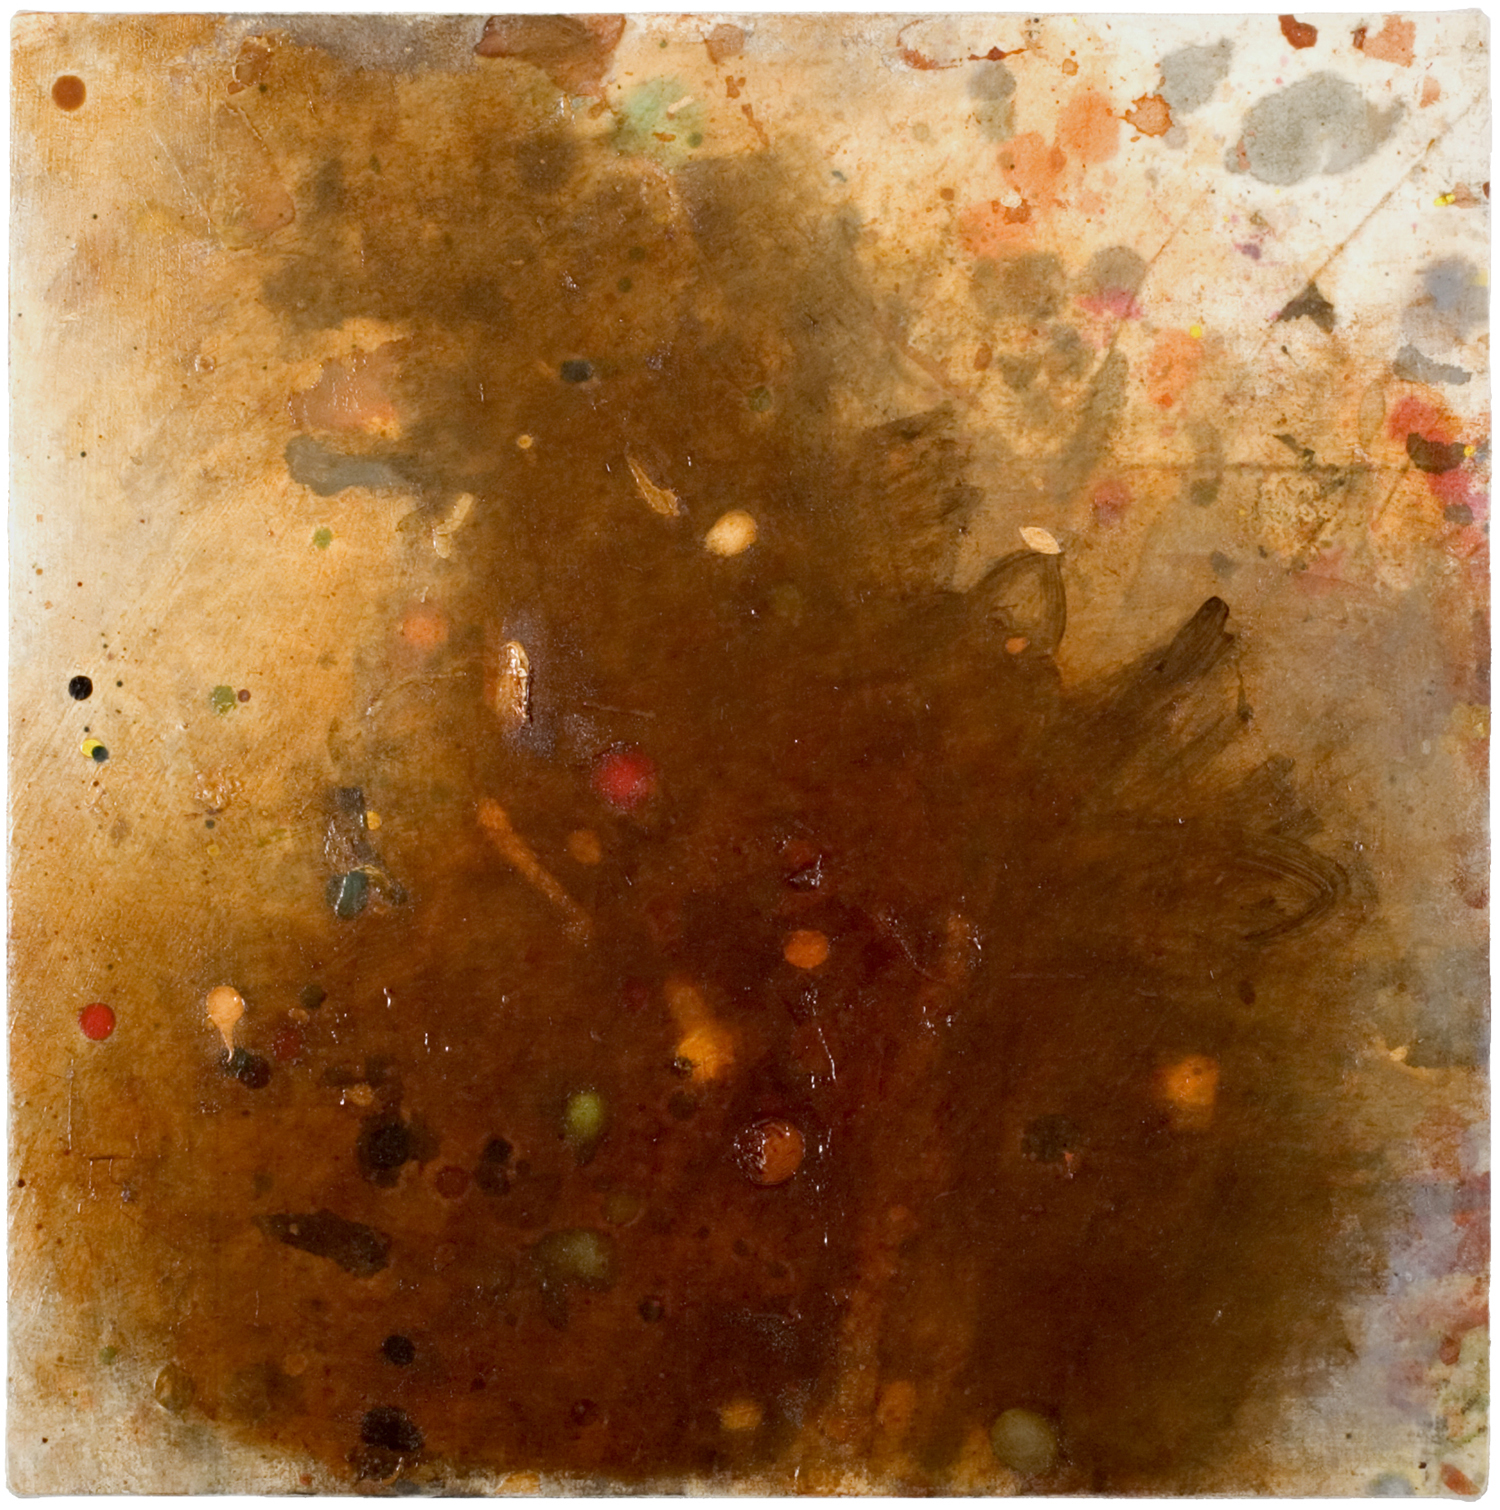 Untitled (paintstars #3), 2005